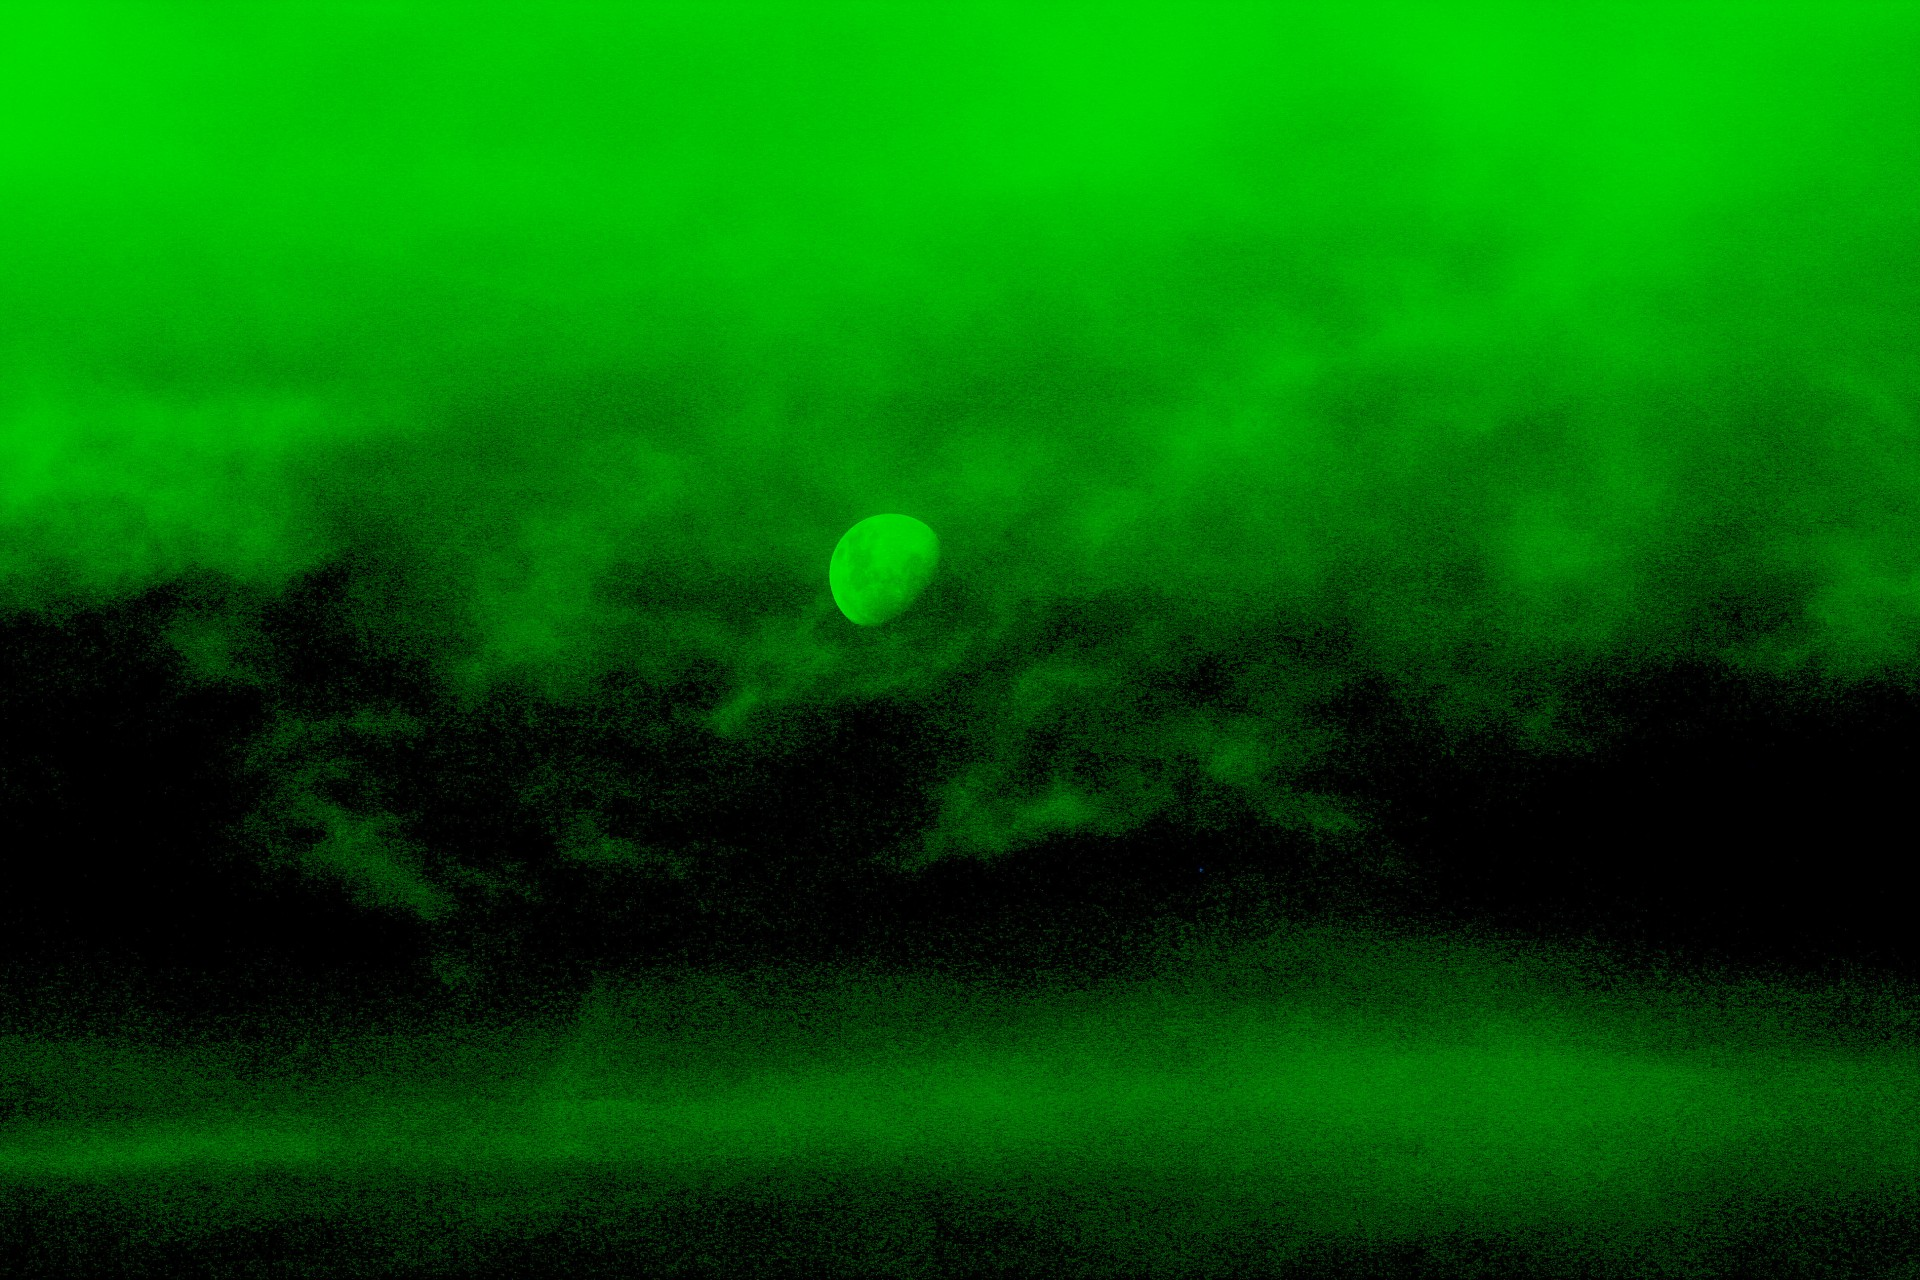 Night Vision Can Now Become an Everyday Thing! How Exciting!